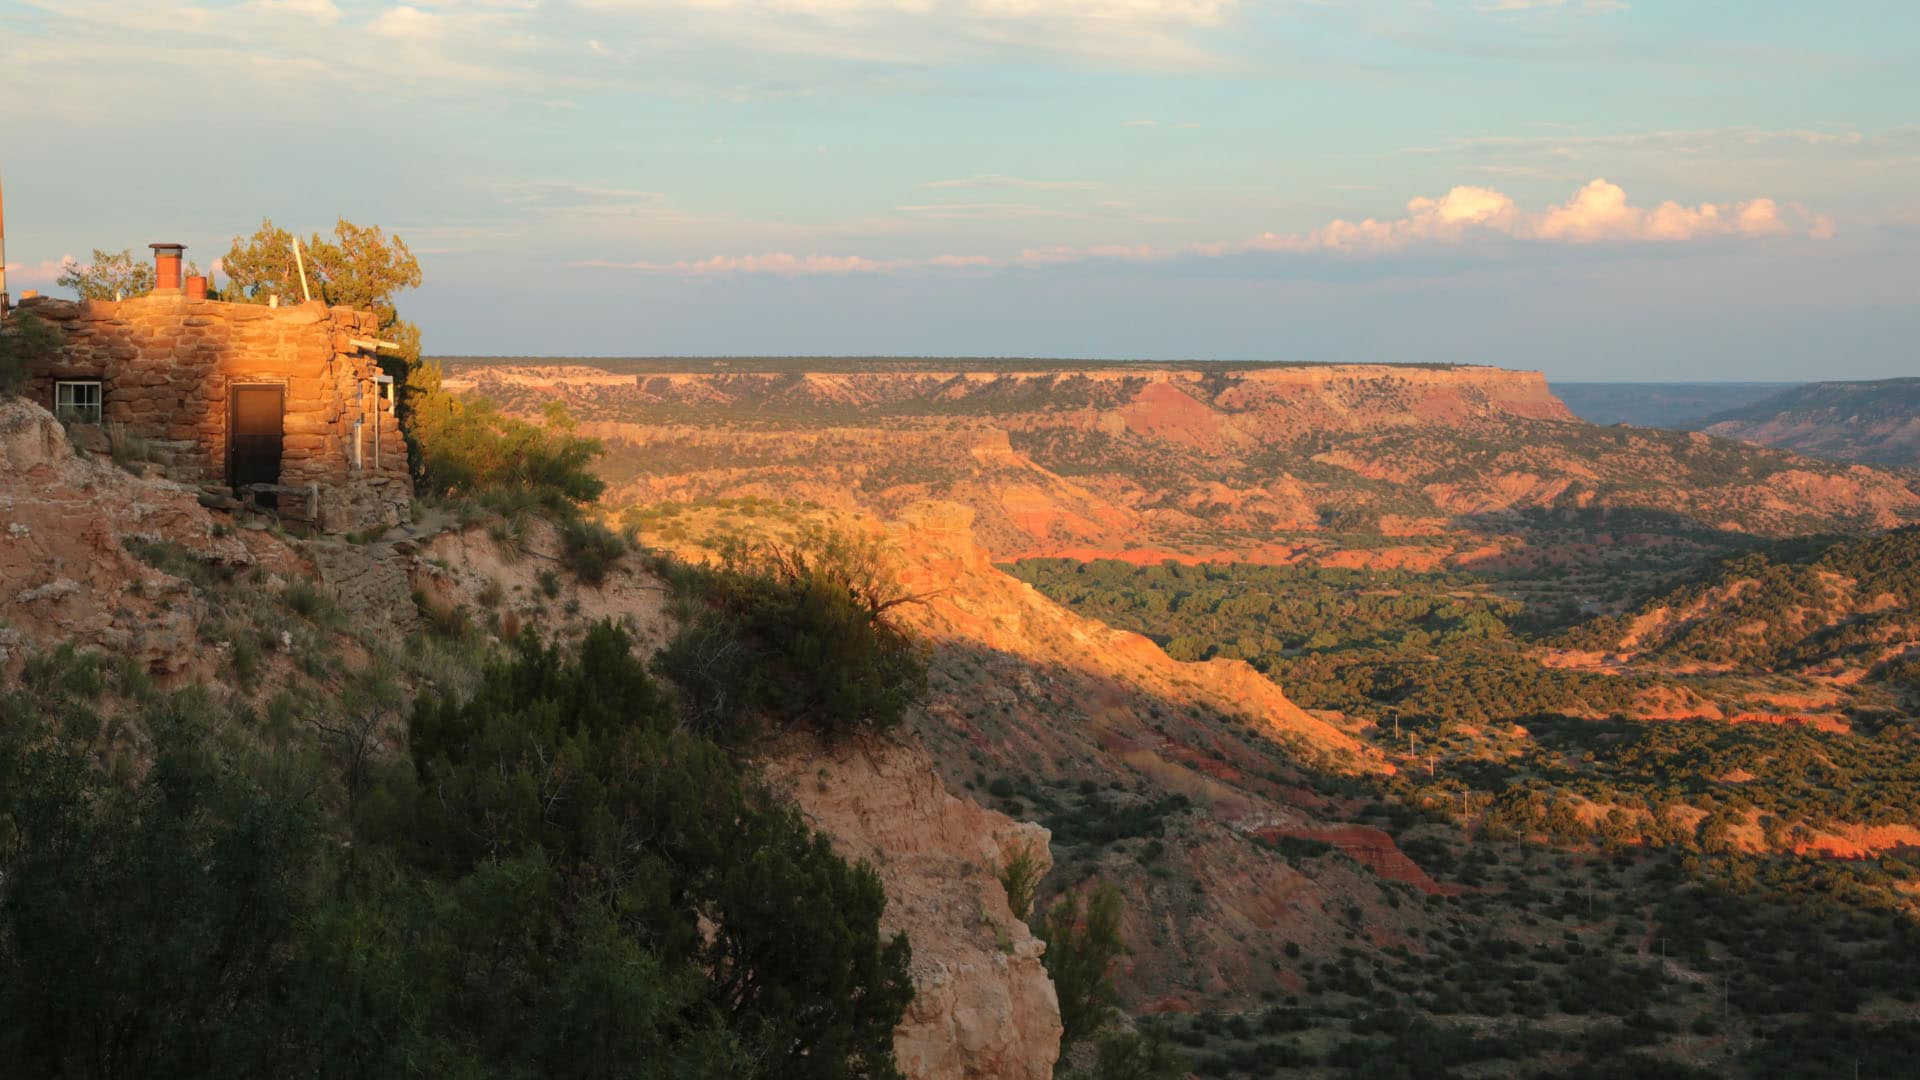 The sun sets on the Lighthouse cabin in Palo Duro Canyon State Park, Texas.